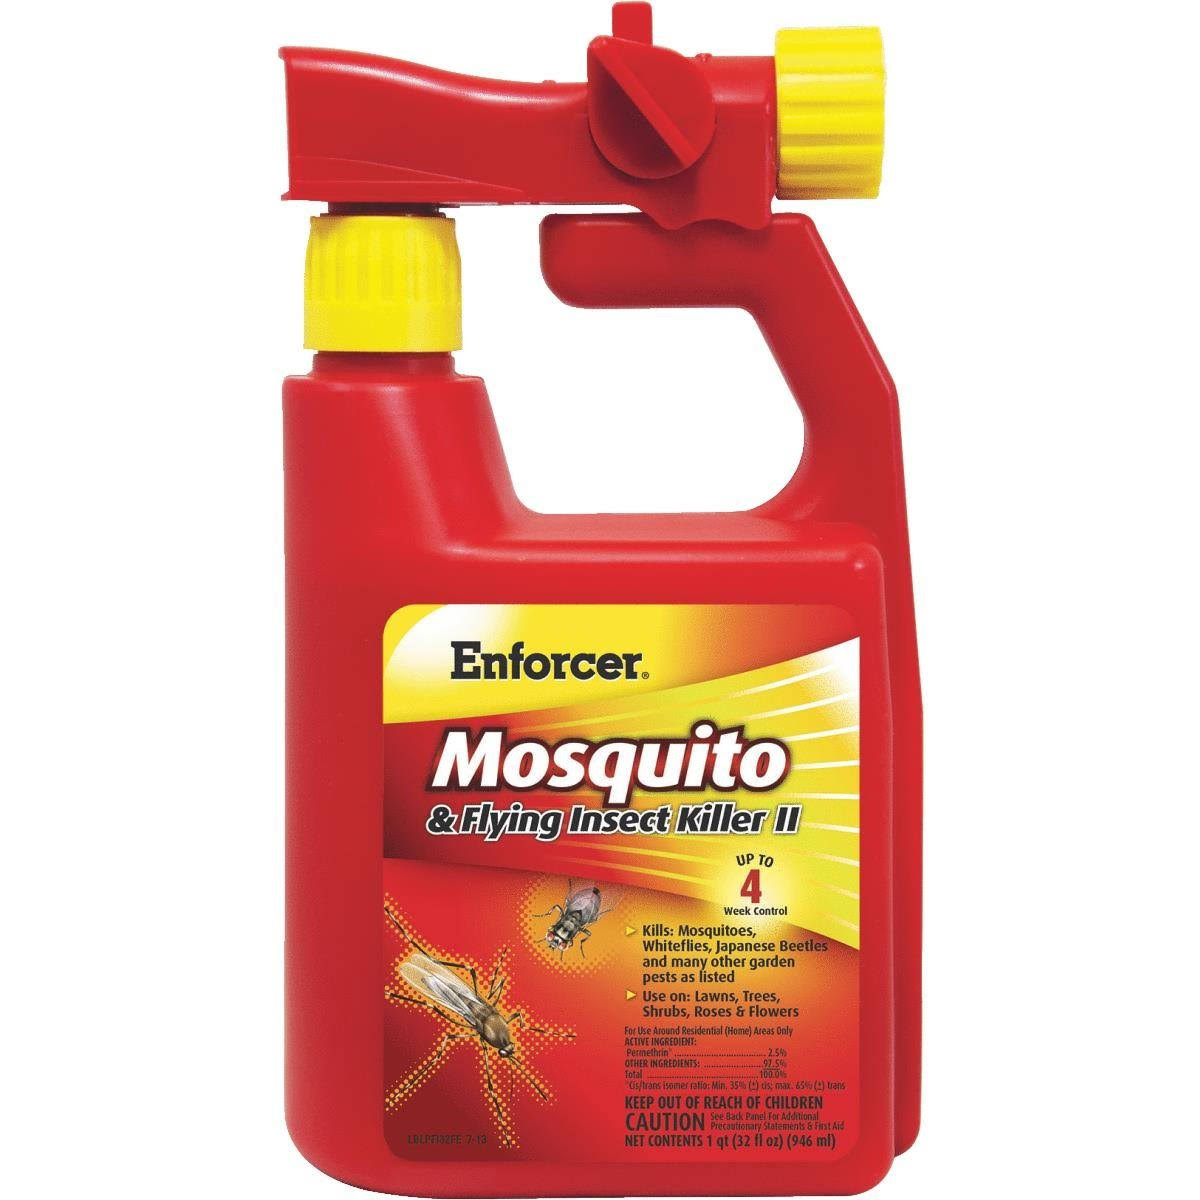 Enforcer Mosquito and Flying Insect Killer